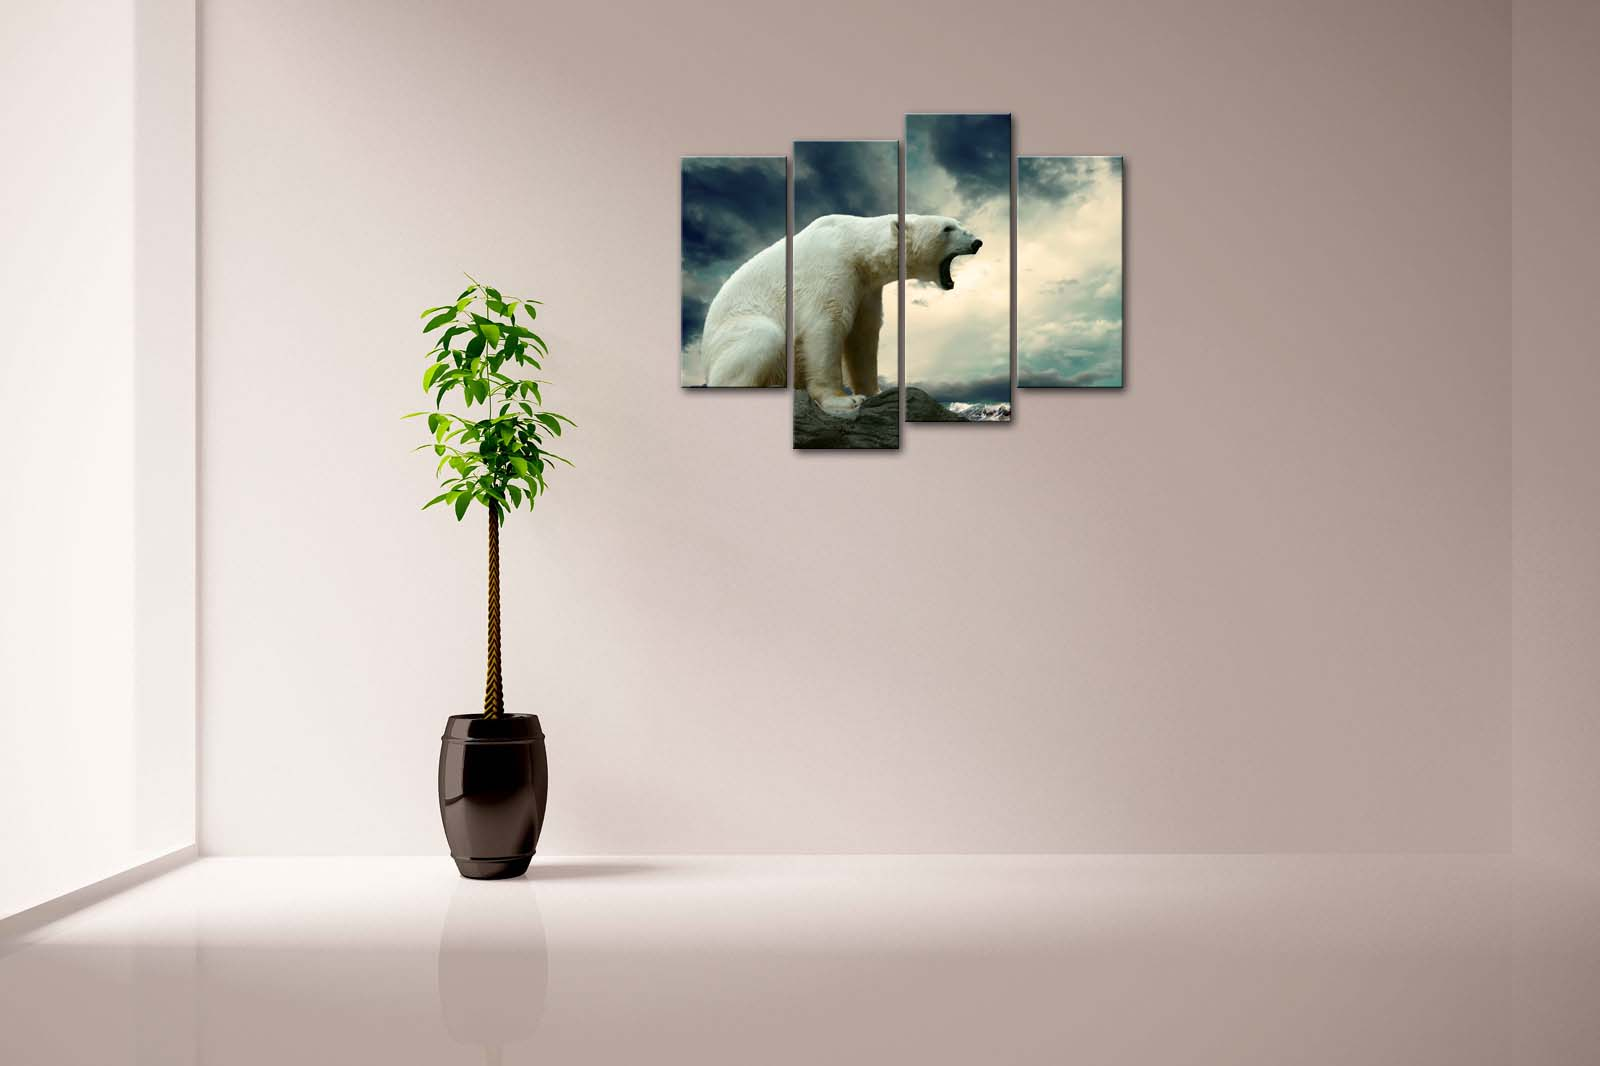 Framed Wall Art Pictures Polar Bear Rock Beach Canvas Print Animal Posters With Wooden Frames For Home Living Room Decor - 3